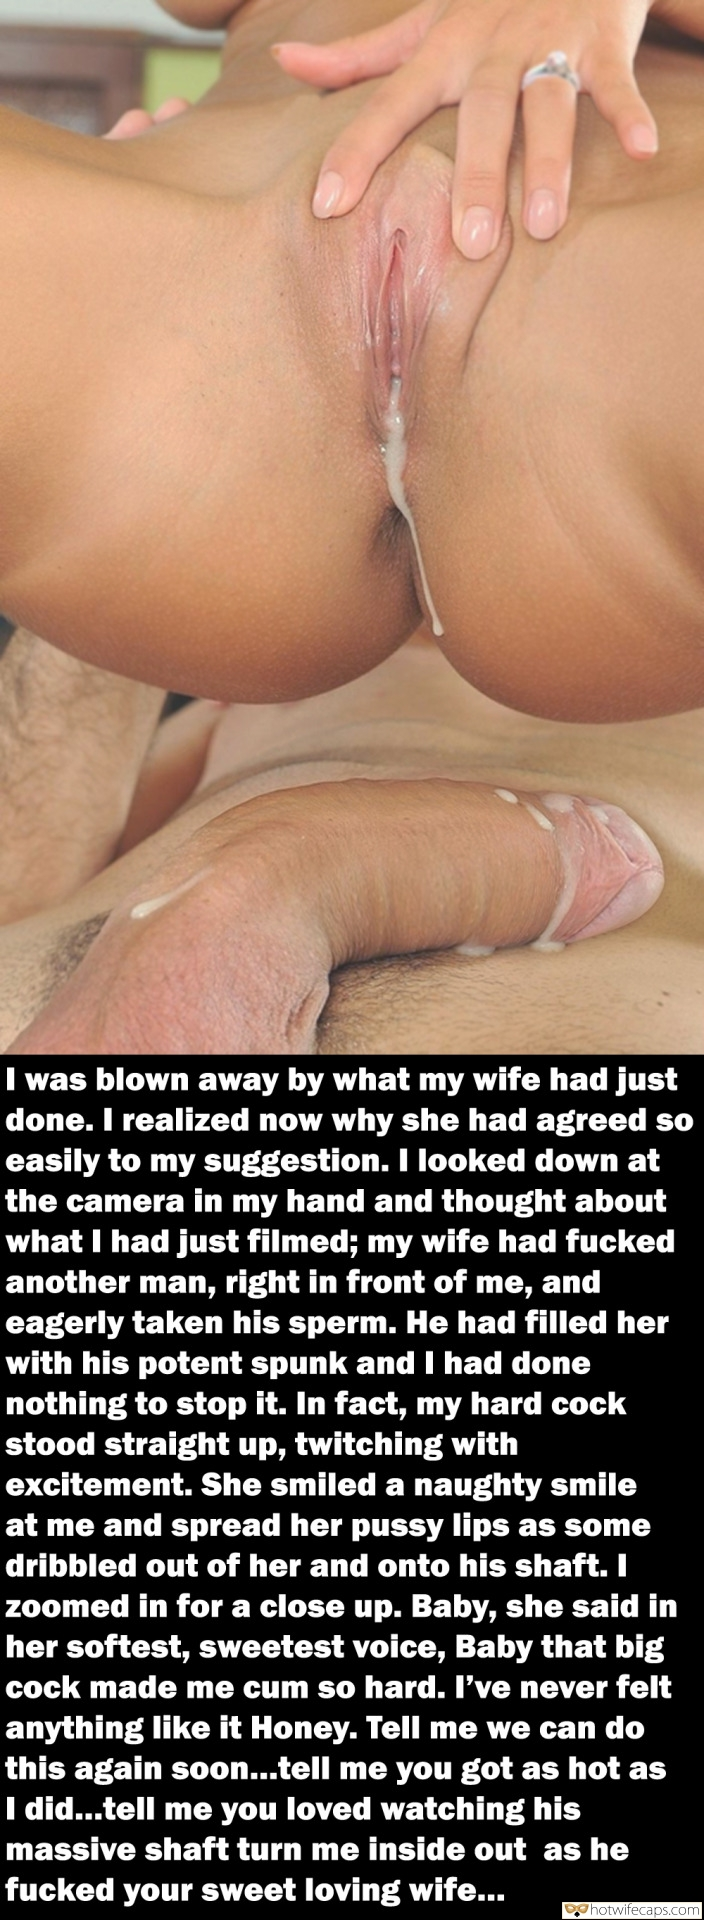 Impregnation Cum Slut Creampie Bigger Cock  hotwife caption: I was blown away by what my wife had just done. I realized now why she had agreed so easily to my suggestion. I looked down at the camera in my hand and thought about what I had just filmed;...